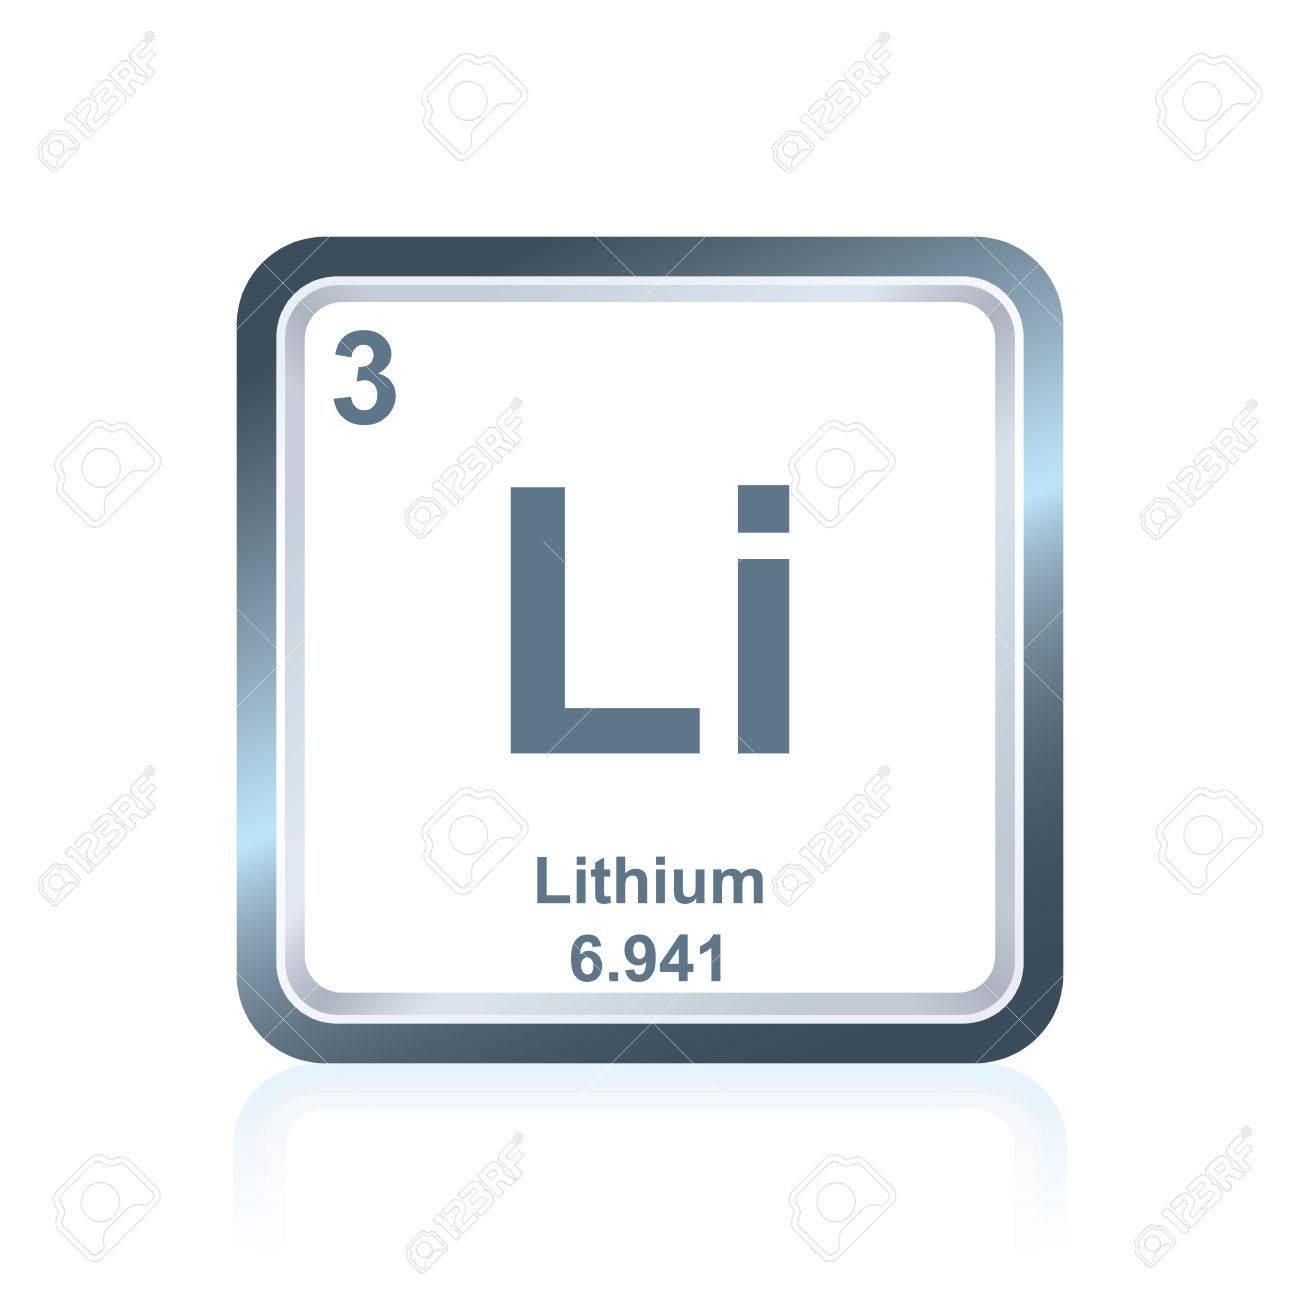 Symbol of chemical element lithium as seen on the periodic table symbol of chemical element lithium as seen on the periodic table of the elements including urtaz Gallery